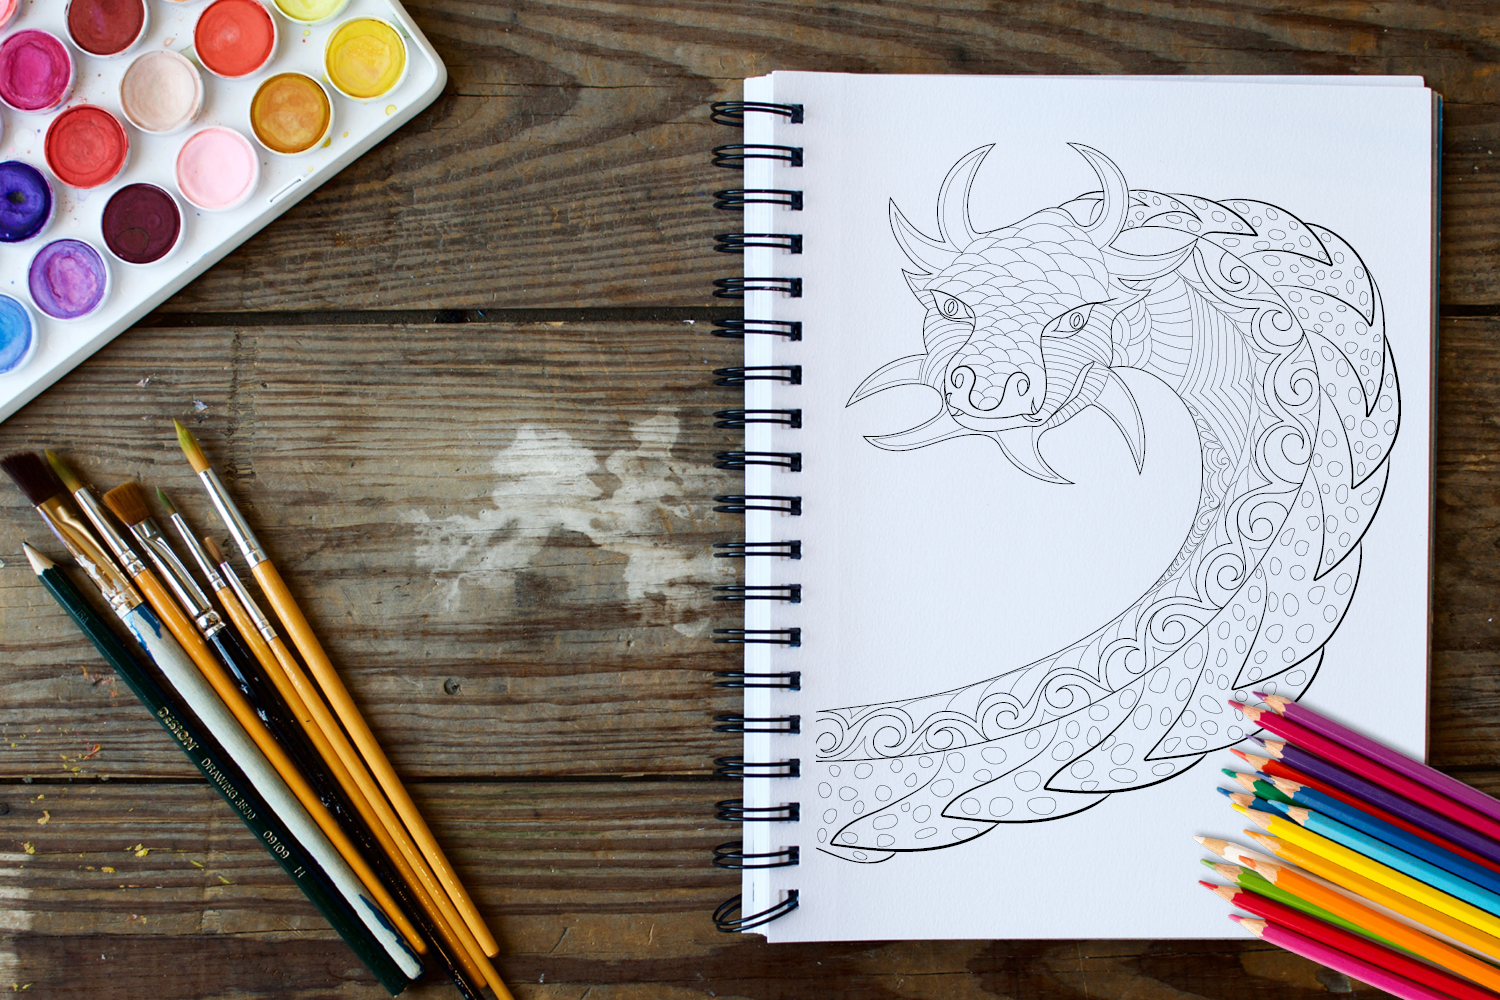 30 Dragons Adult Coloring Pages Instant Download, Coloring Book for Adults example image 4